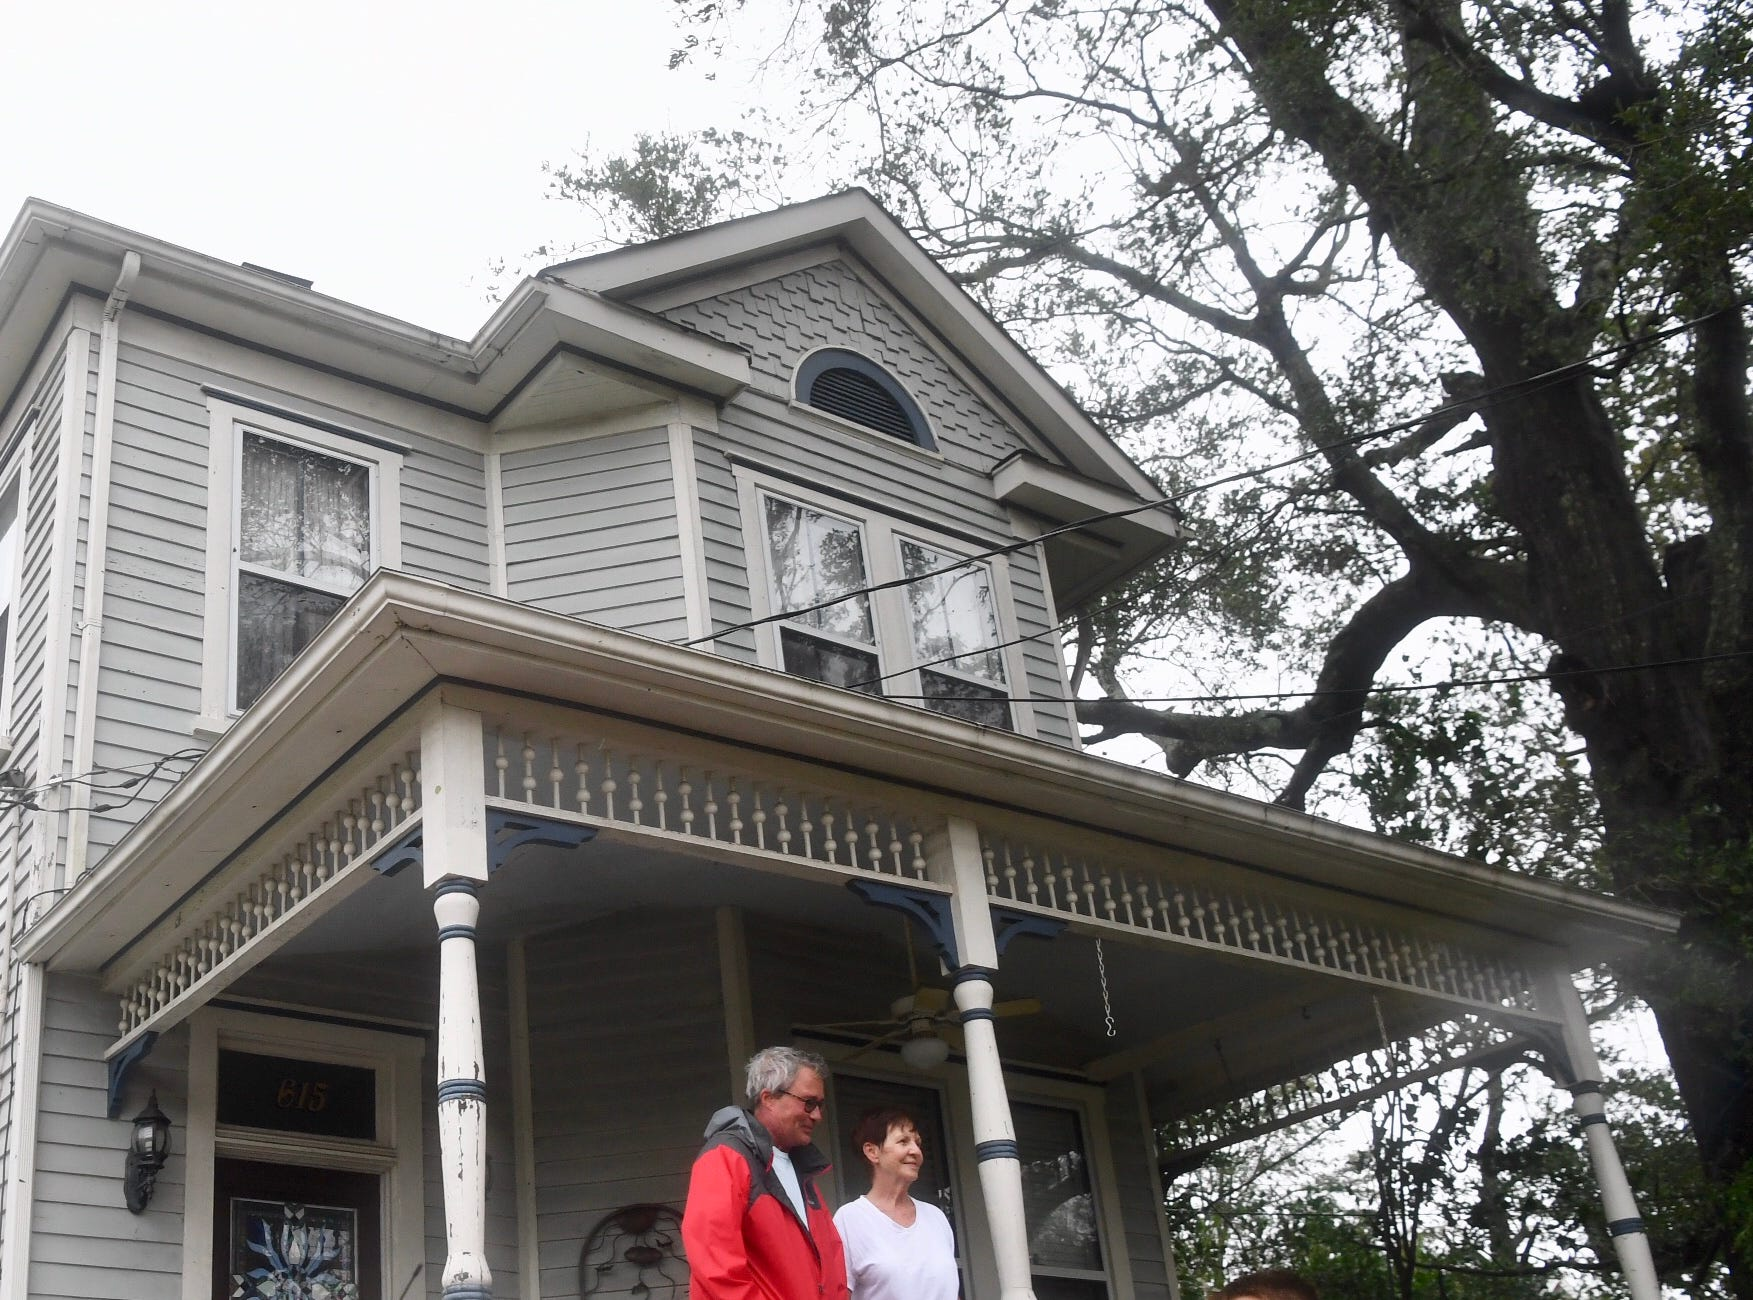 Jeff and Mary Holland stand on the porch of their 1889 home they bought 5 years ago as Hurricane Florence passes through Friday, Sept. 14, 2018, in Wilmington NC. The roof they replaced after Hurricane Matthew damaged it years ago was unscathed.